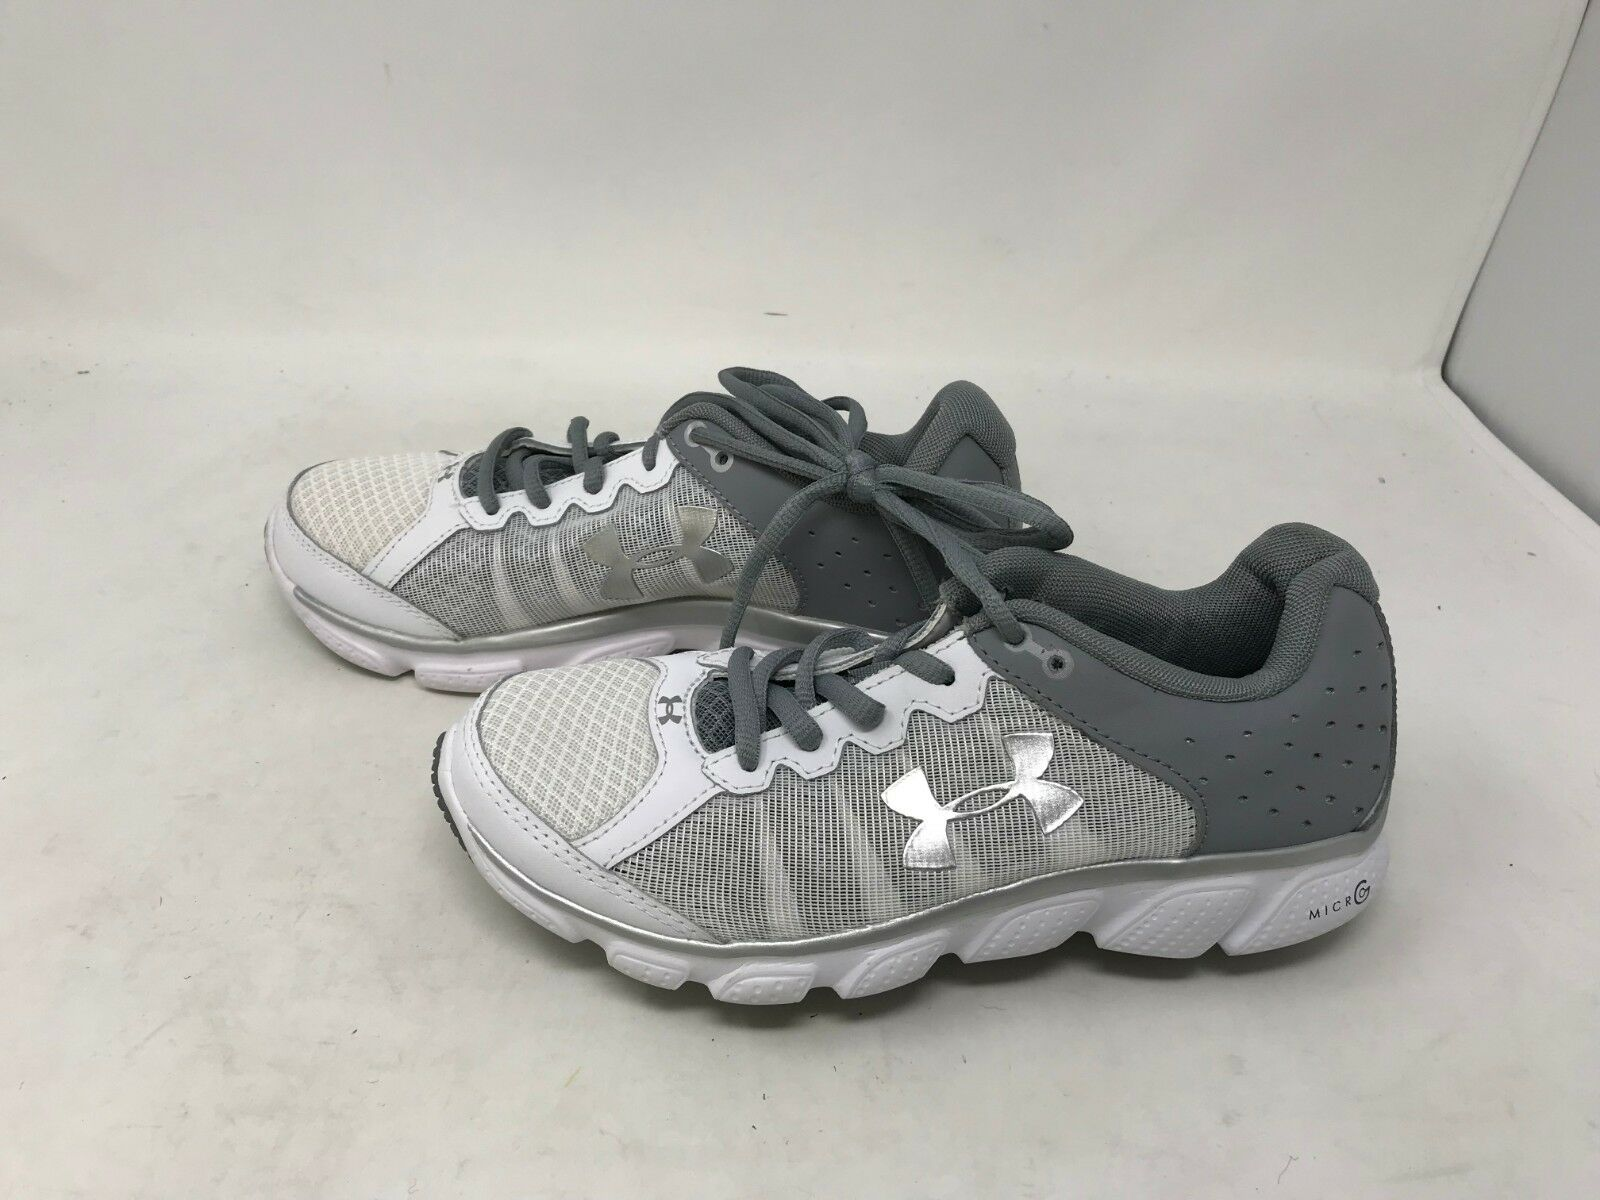 Donna 6 Under Armour (1266252-100) Micro G Assert 6 Donna Running Shoes (2o) 534633